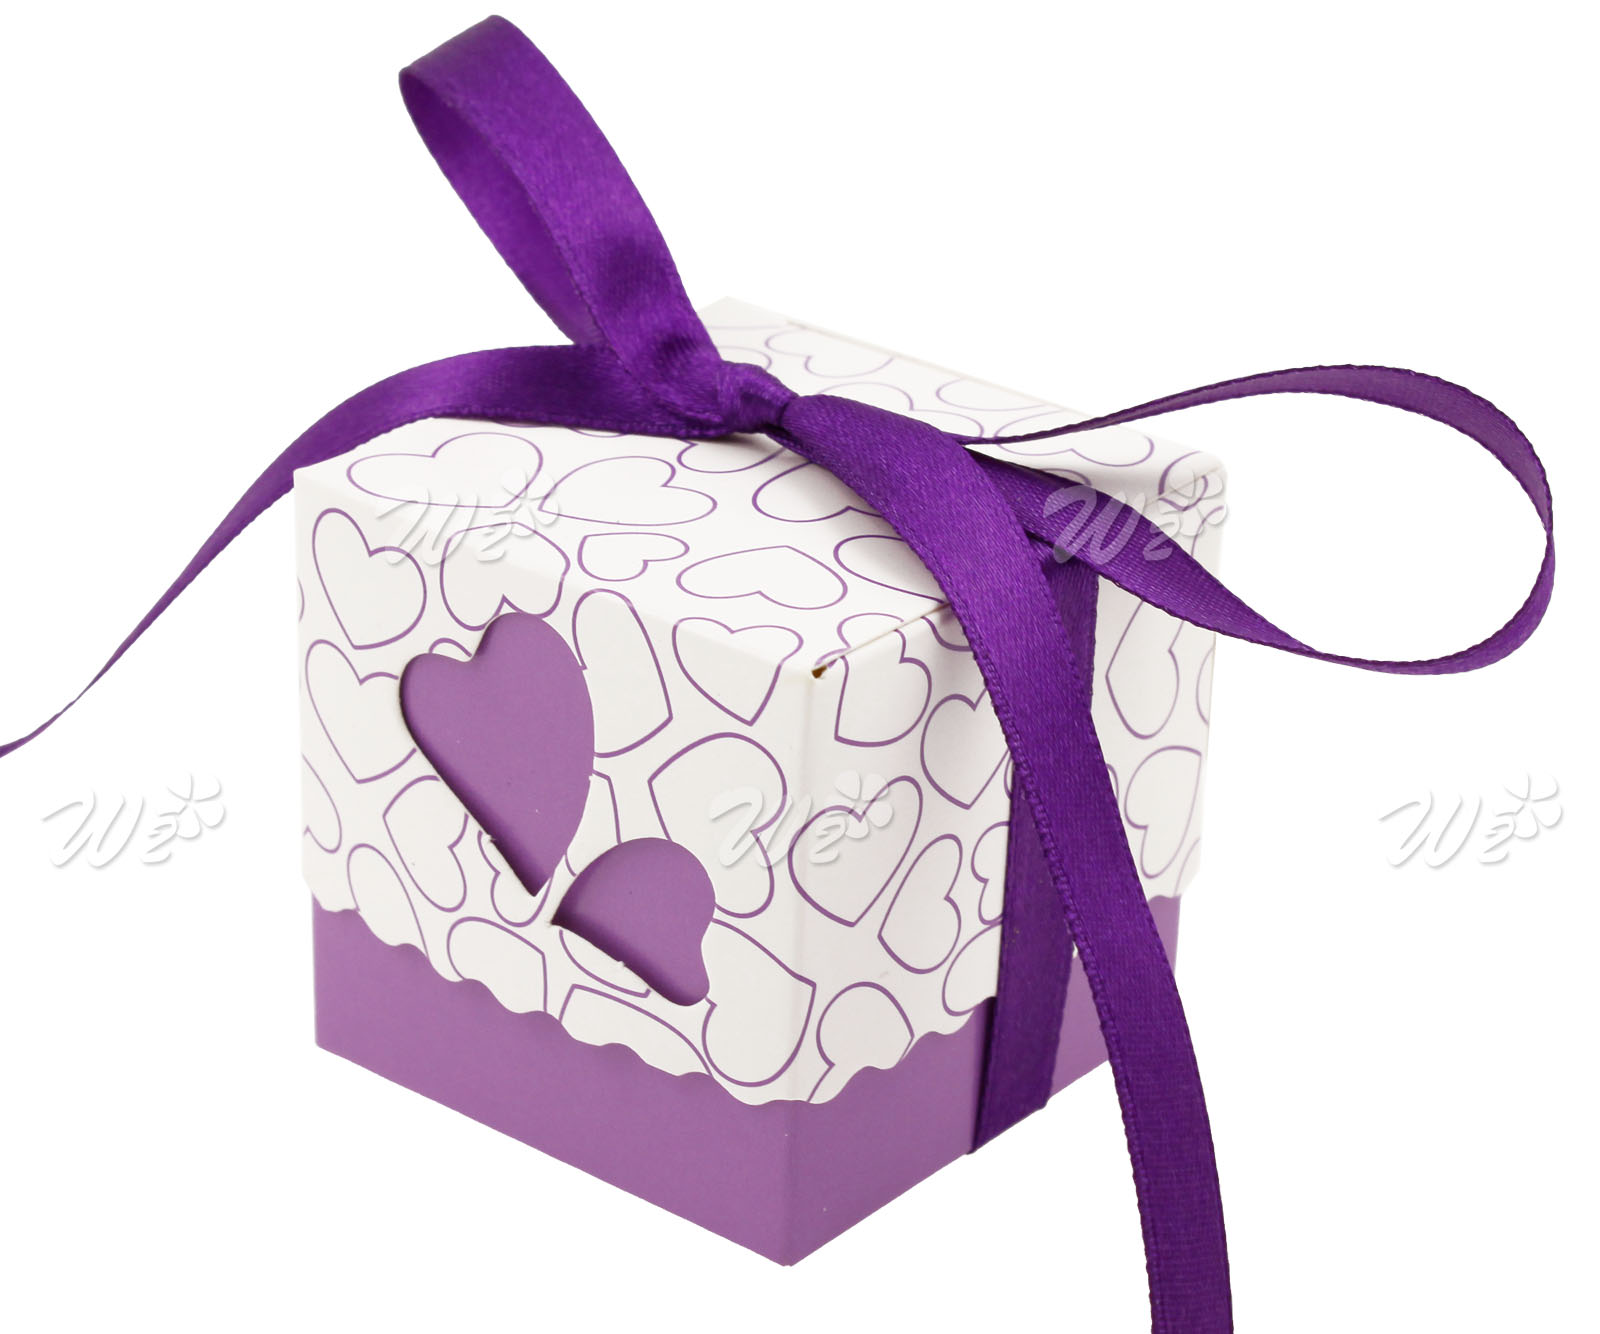 50 x Purple Wedding Party Gift Ribbons Favors Love Heart Design ...